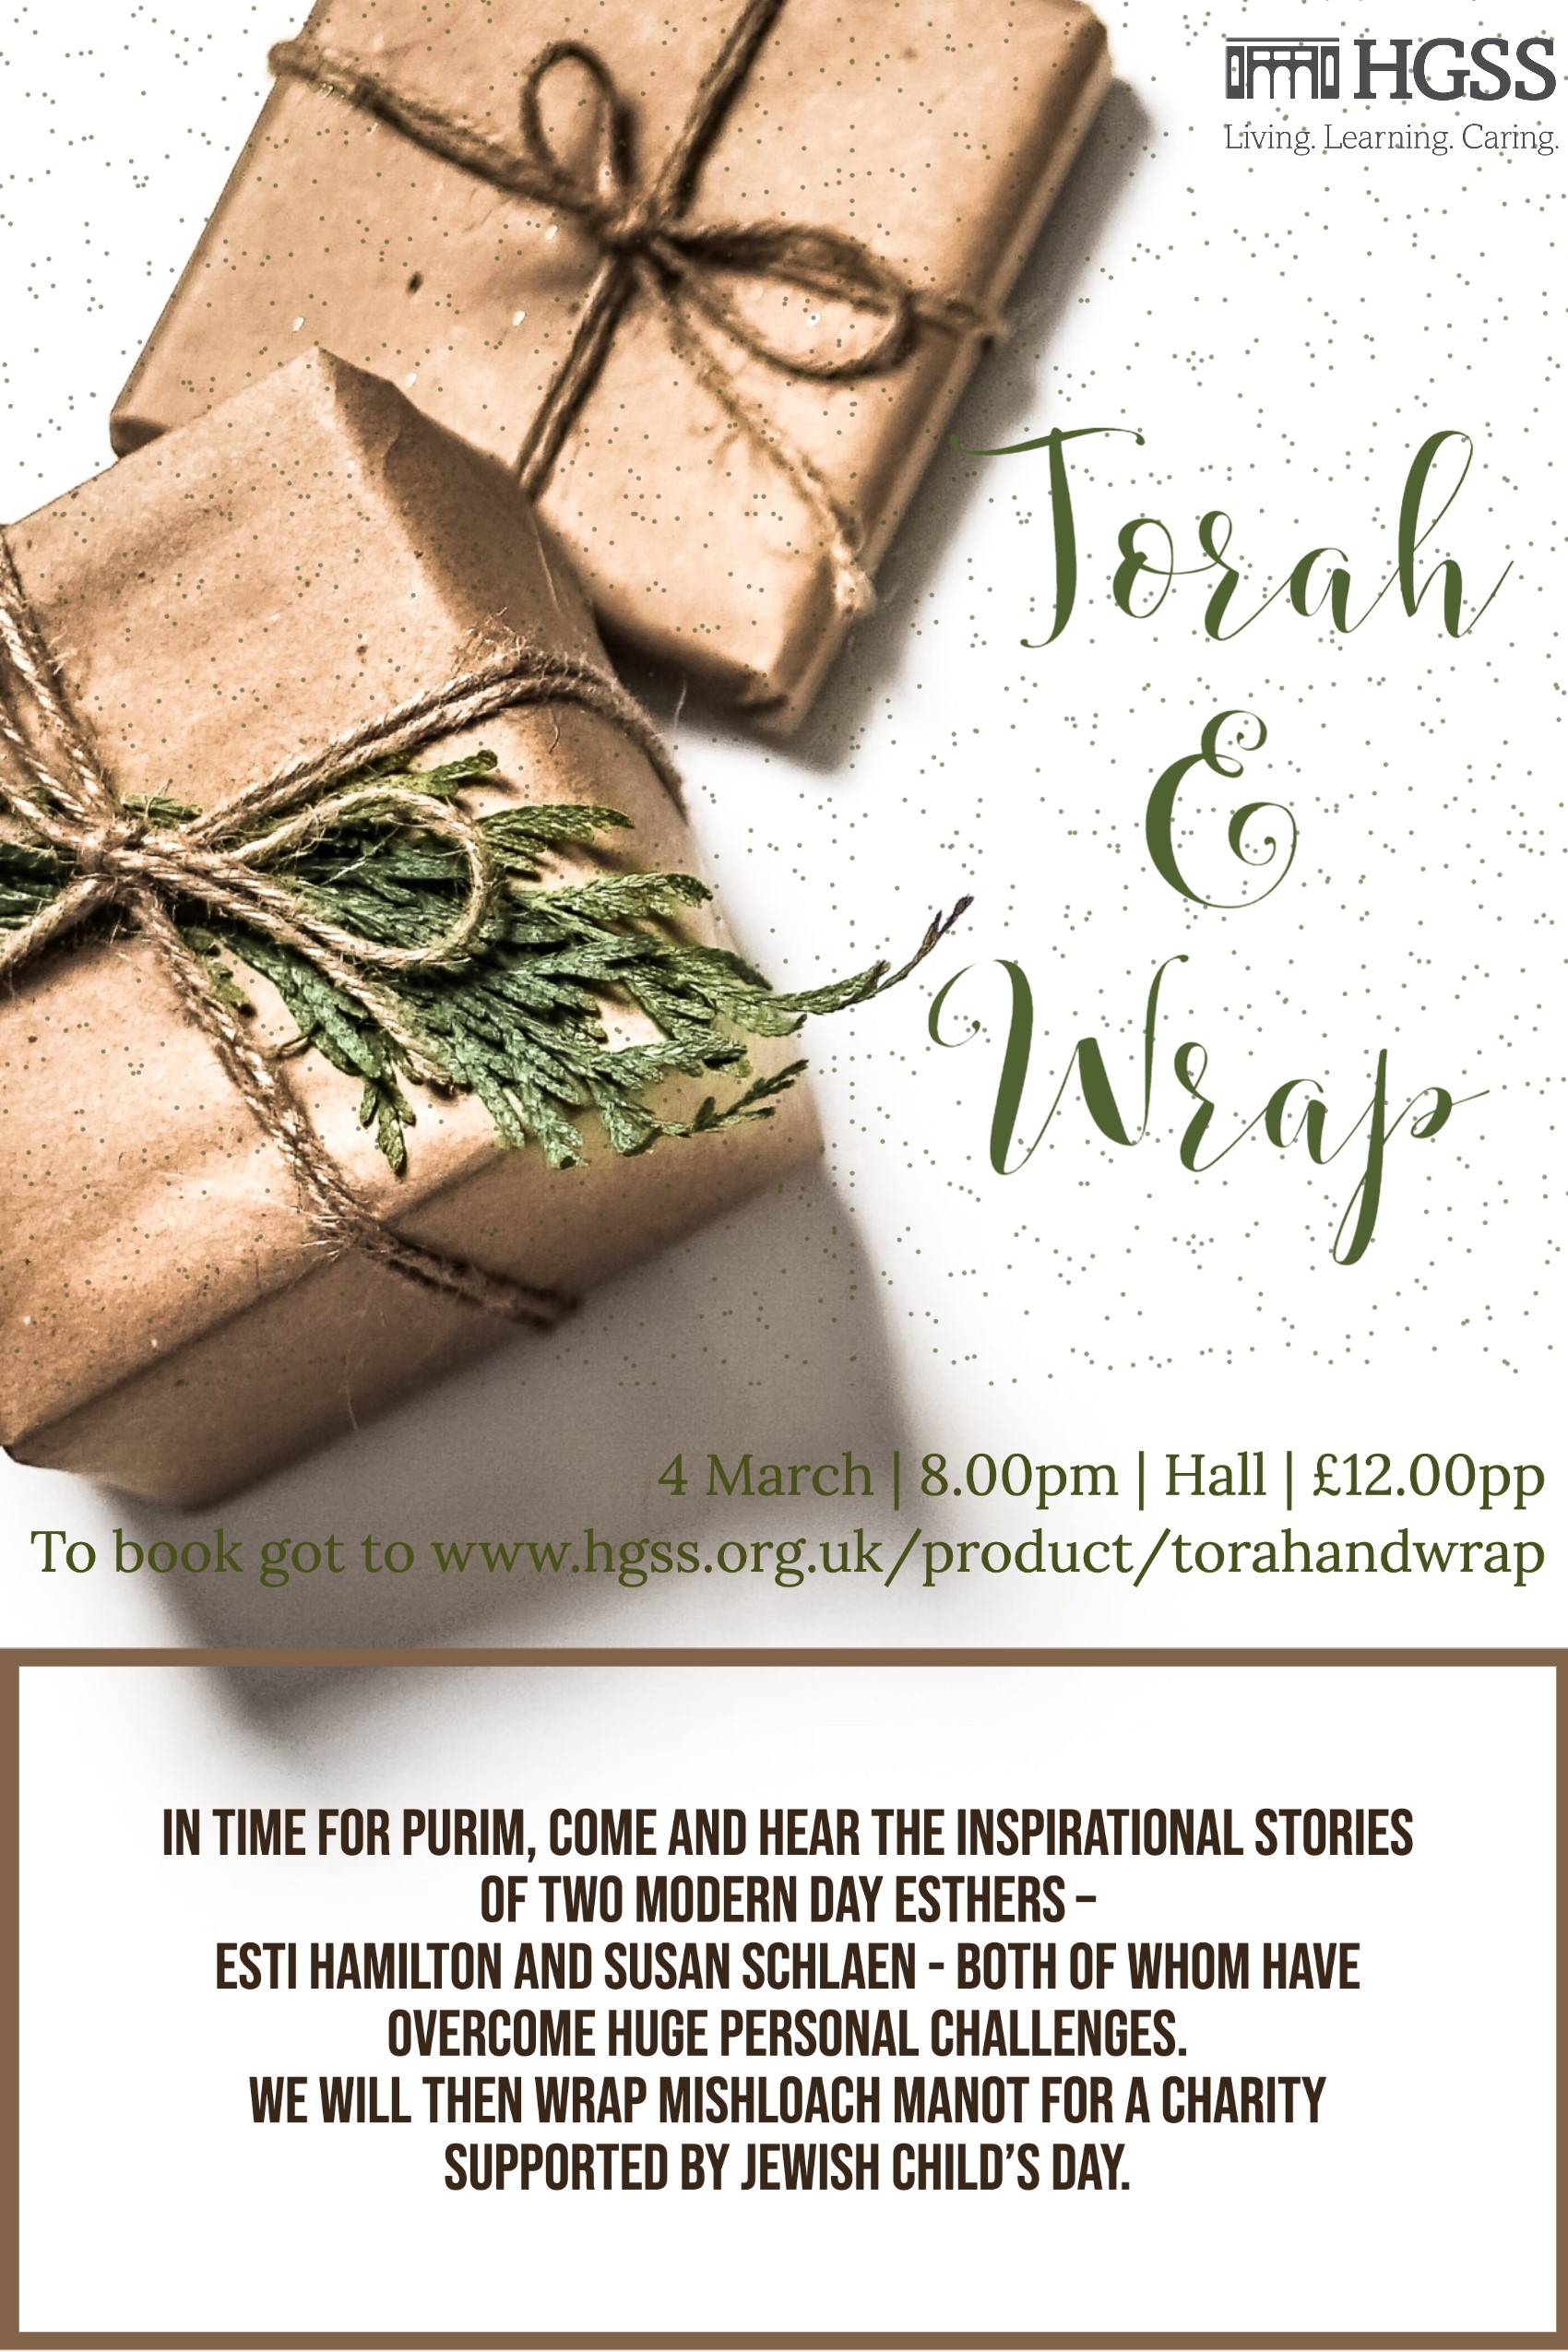 A Torah & Wrap Evening @ HGSS